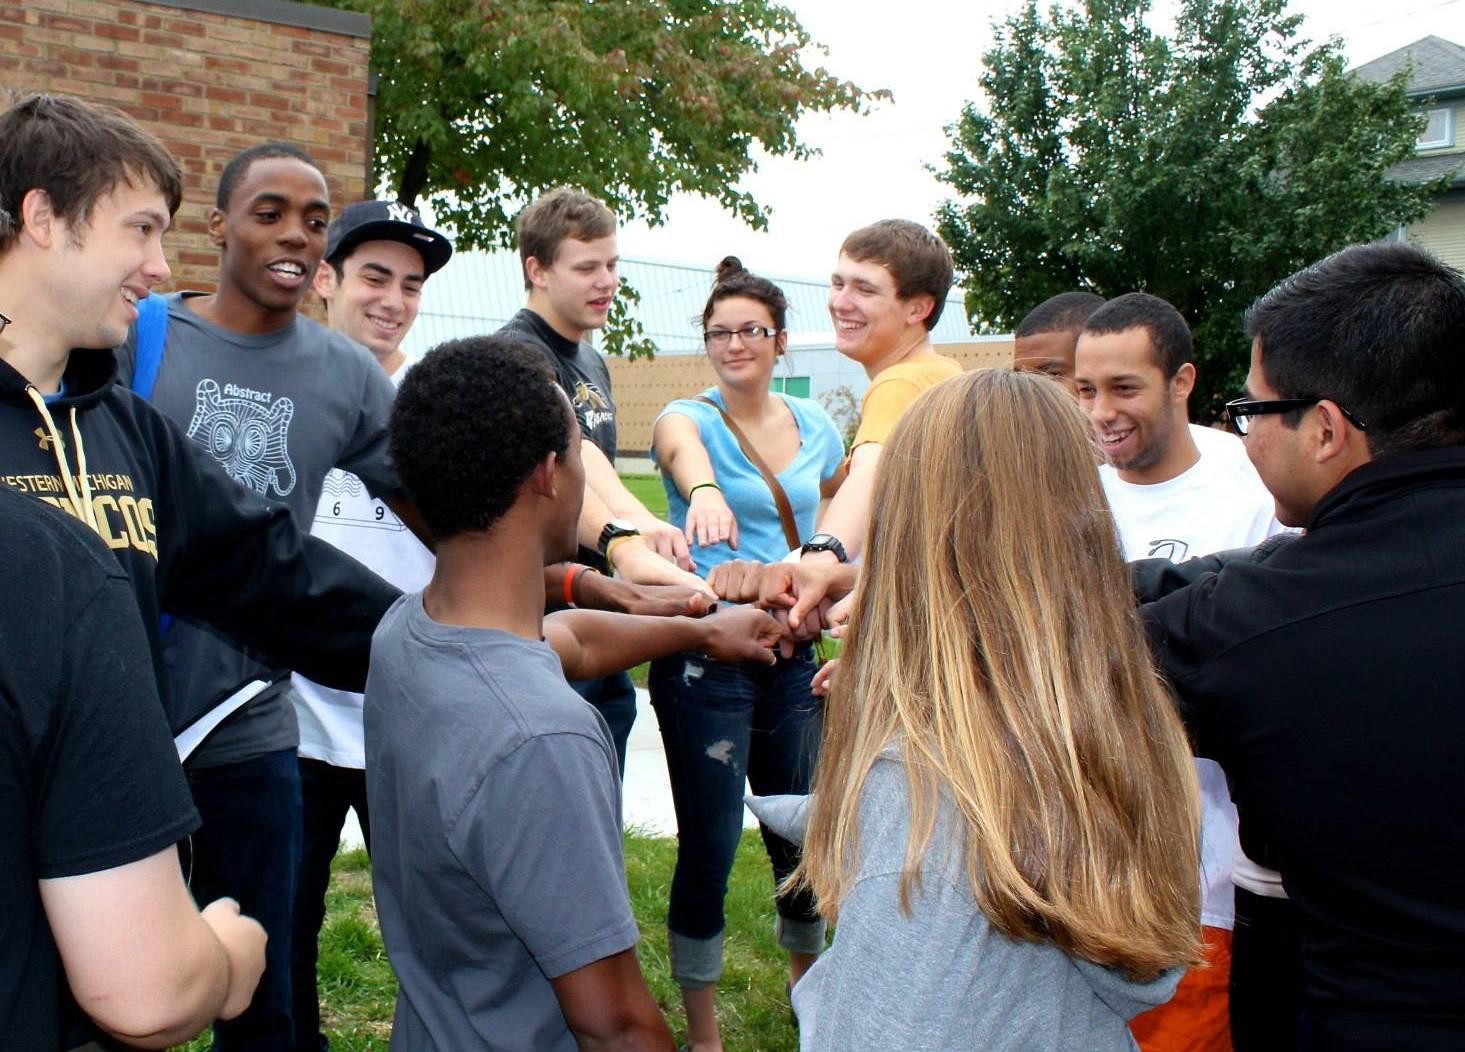 Photo credit / Allie Creamer FOCUS members Tinashe Chaponda, Ari Solomon, Chris Miller, Jazmine Ray, Brian Bartley and others get together for a team chant after the Bronson 5k Walk/Run on September 29th.